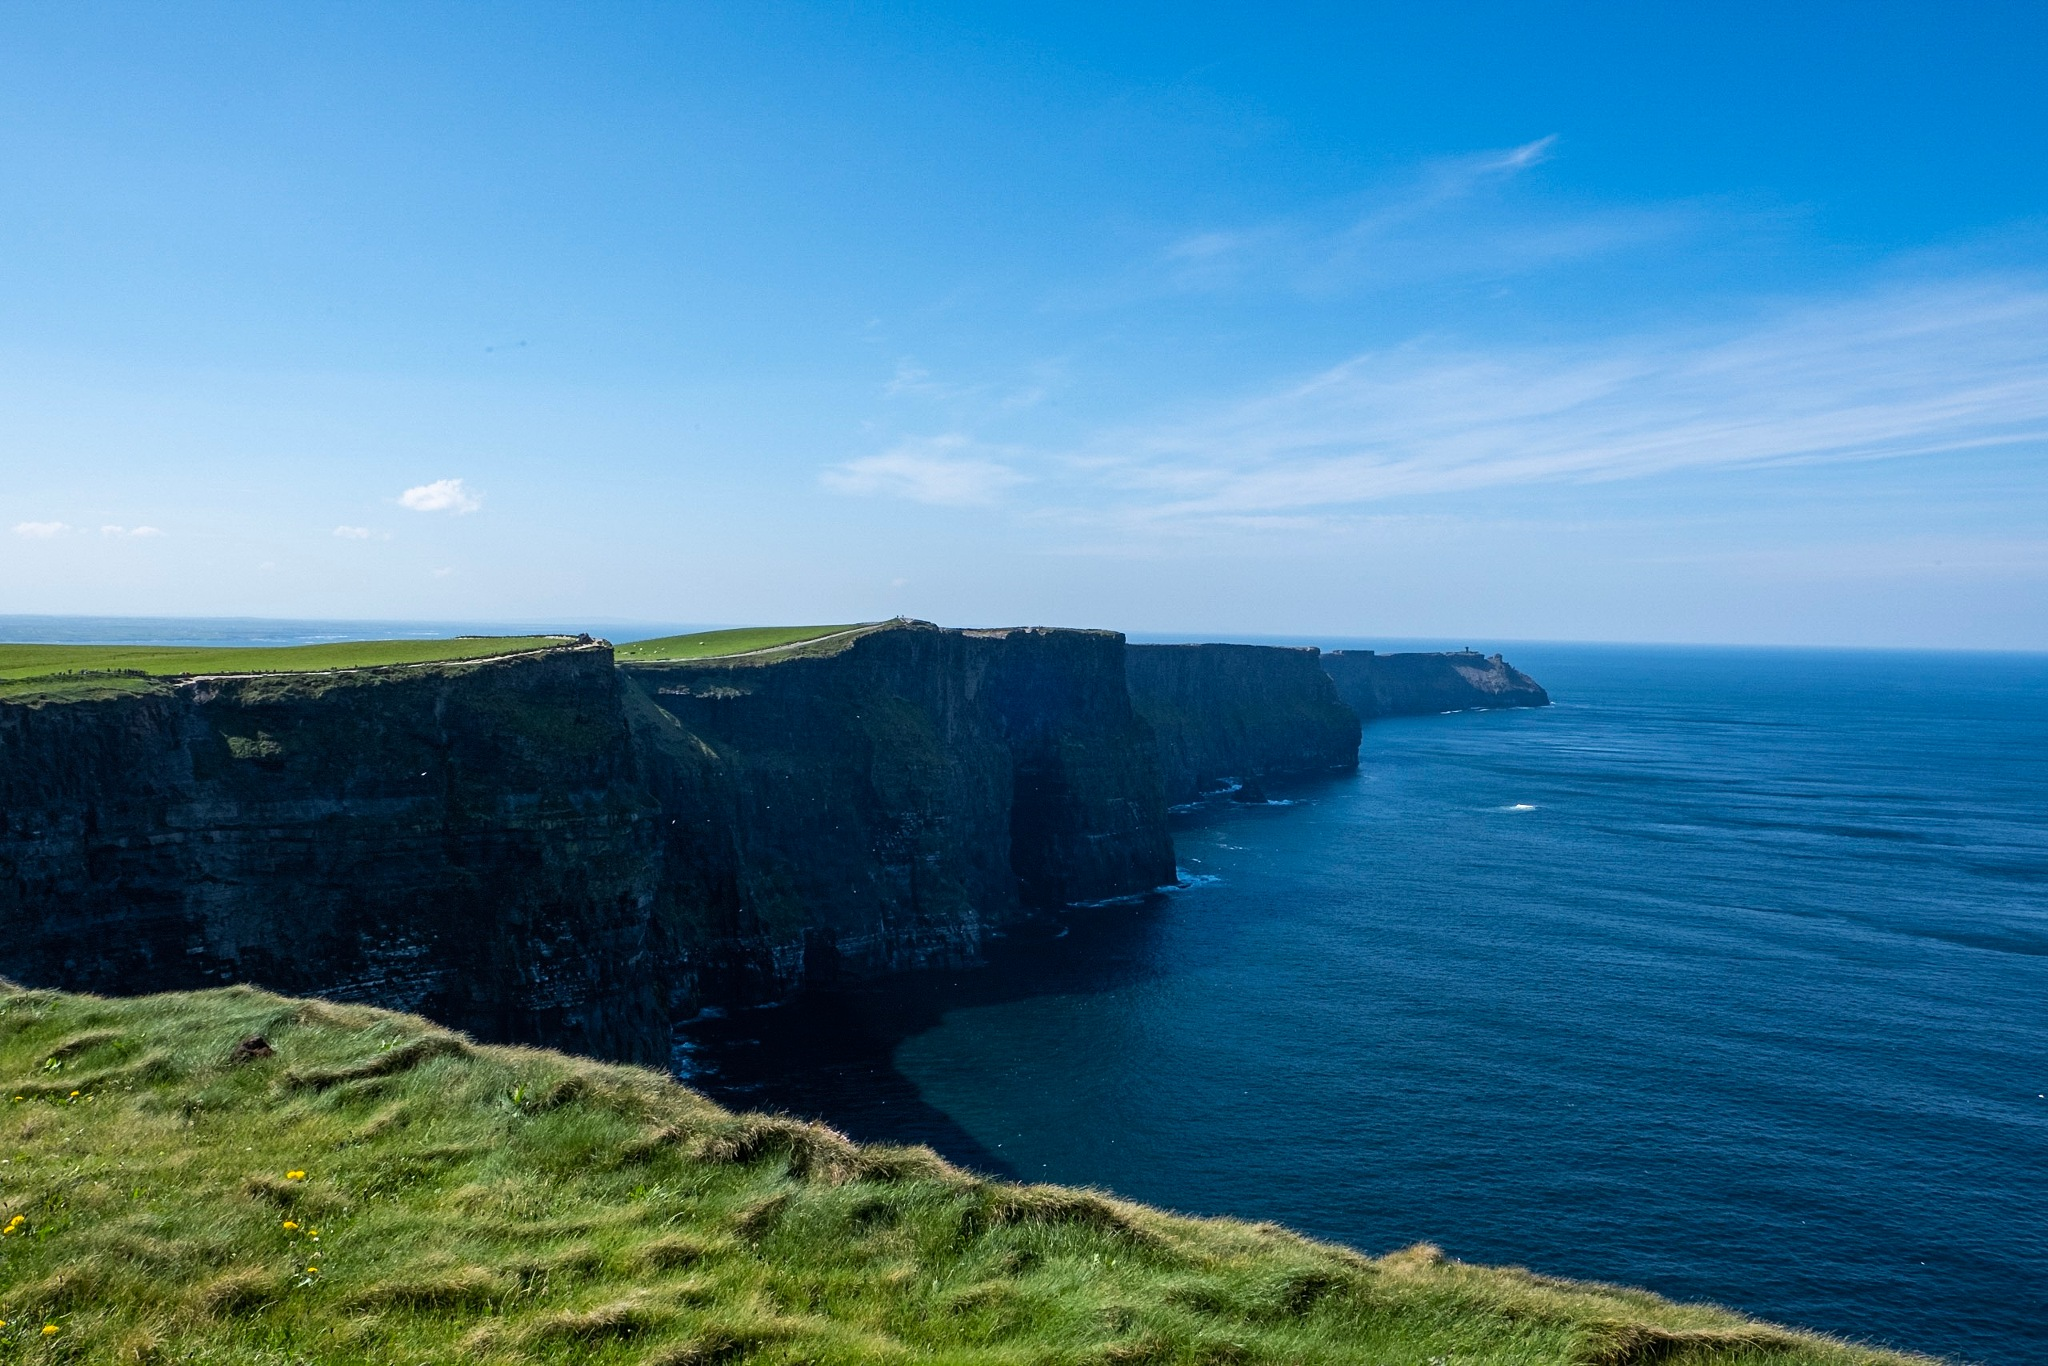 Cliffs of Moher - Ireland by Mikael Jakobsson